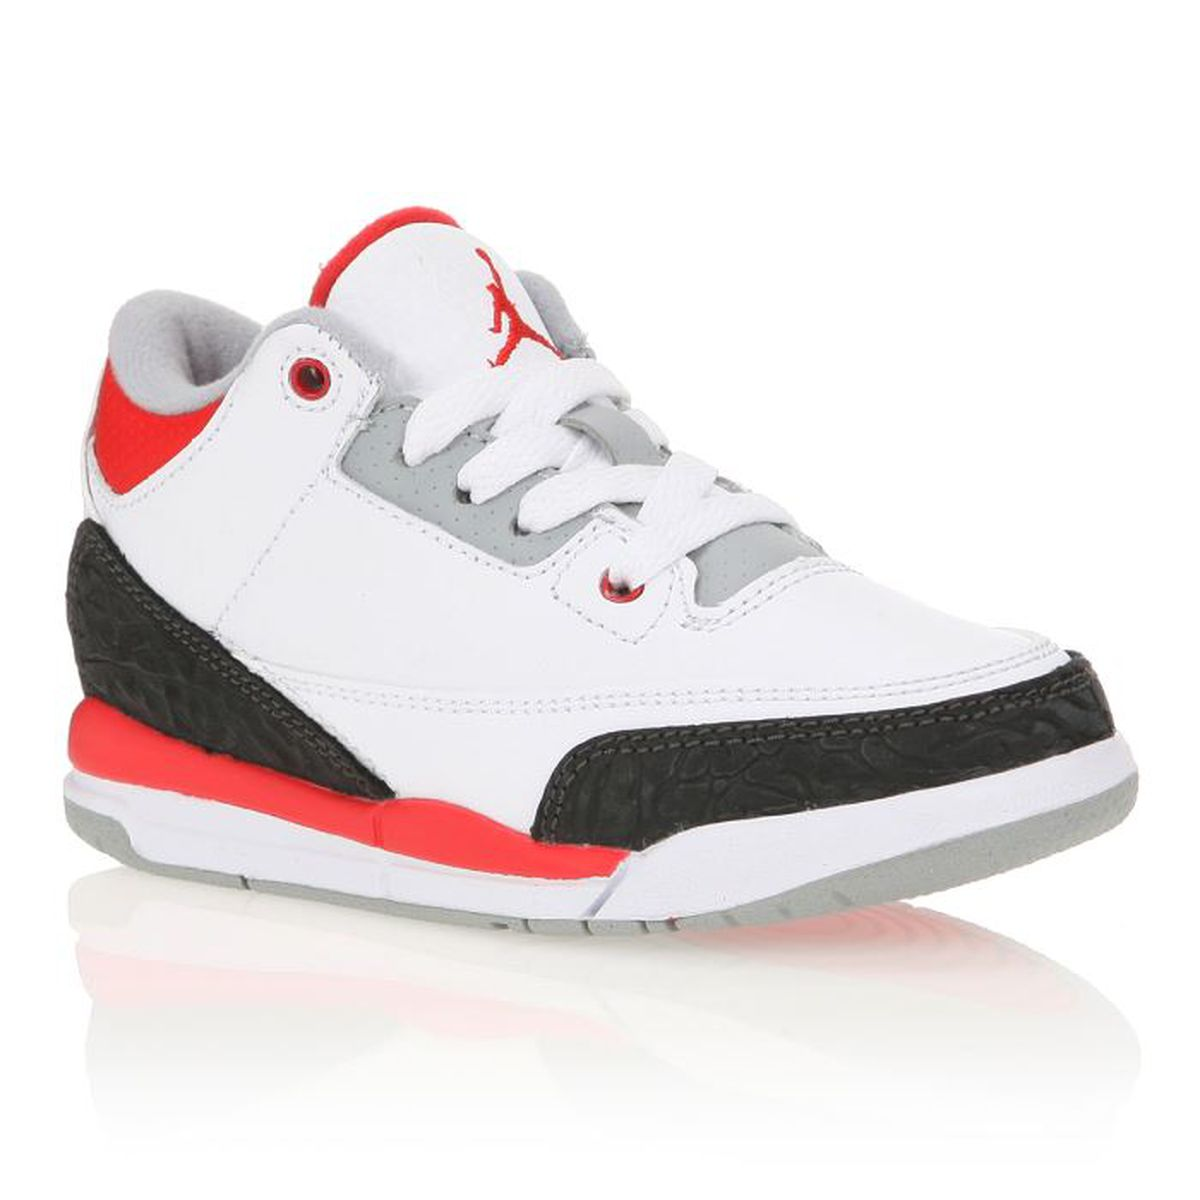 nike jordan baskets 3 retro enfant blanc blanc achat vente basket cdiscount. Black Bedroom Furniture Sets. Home Design Ideas